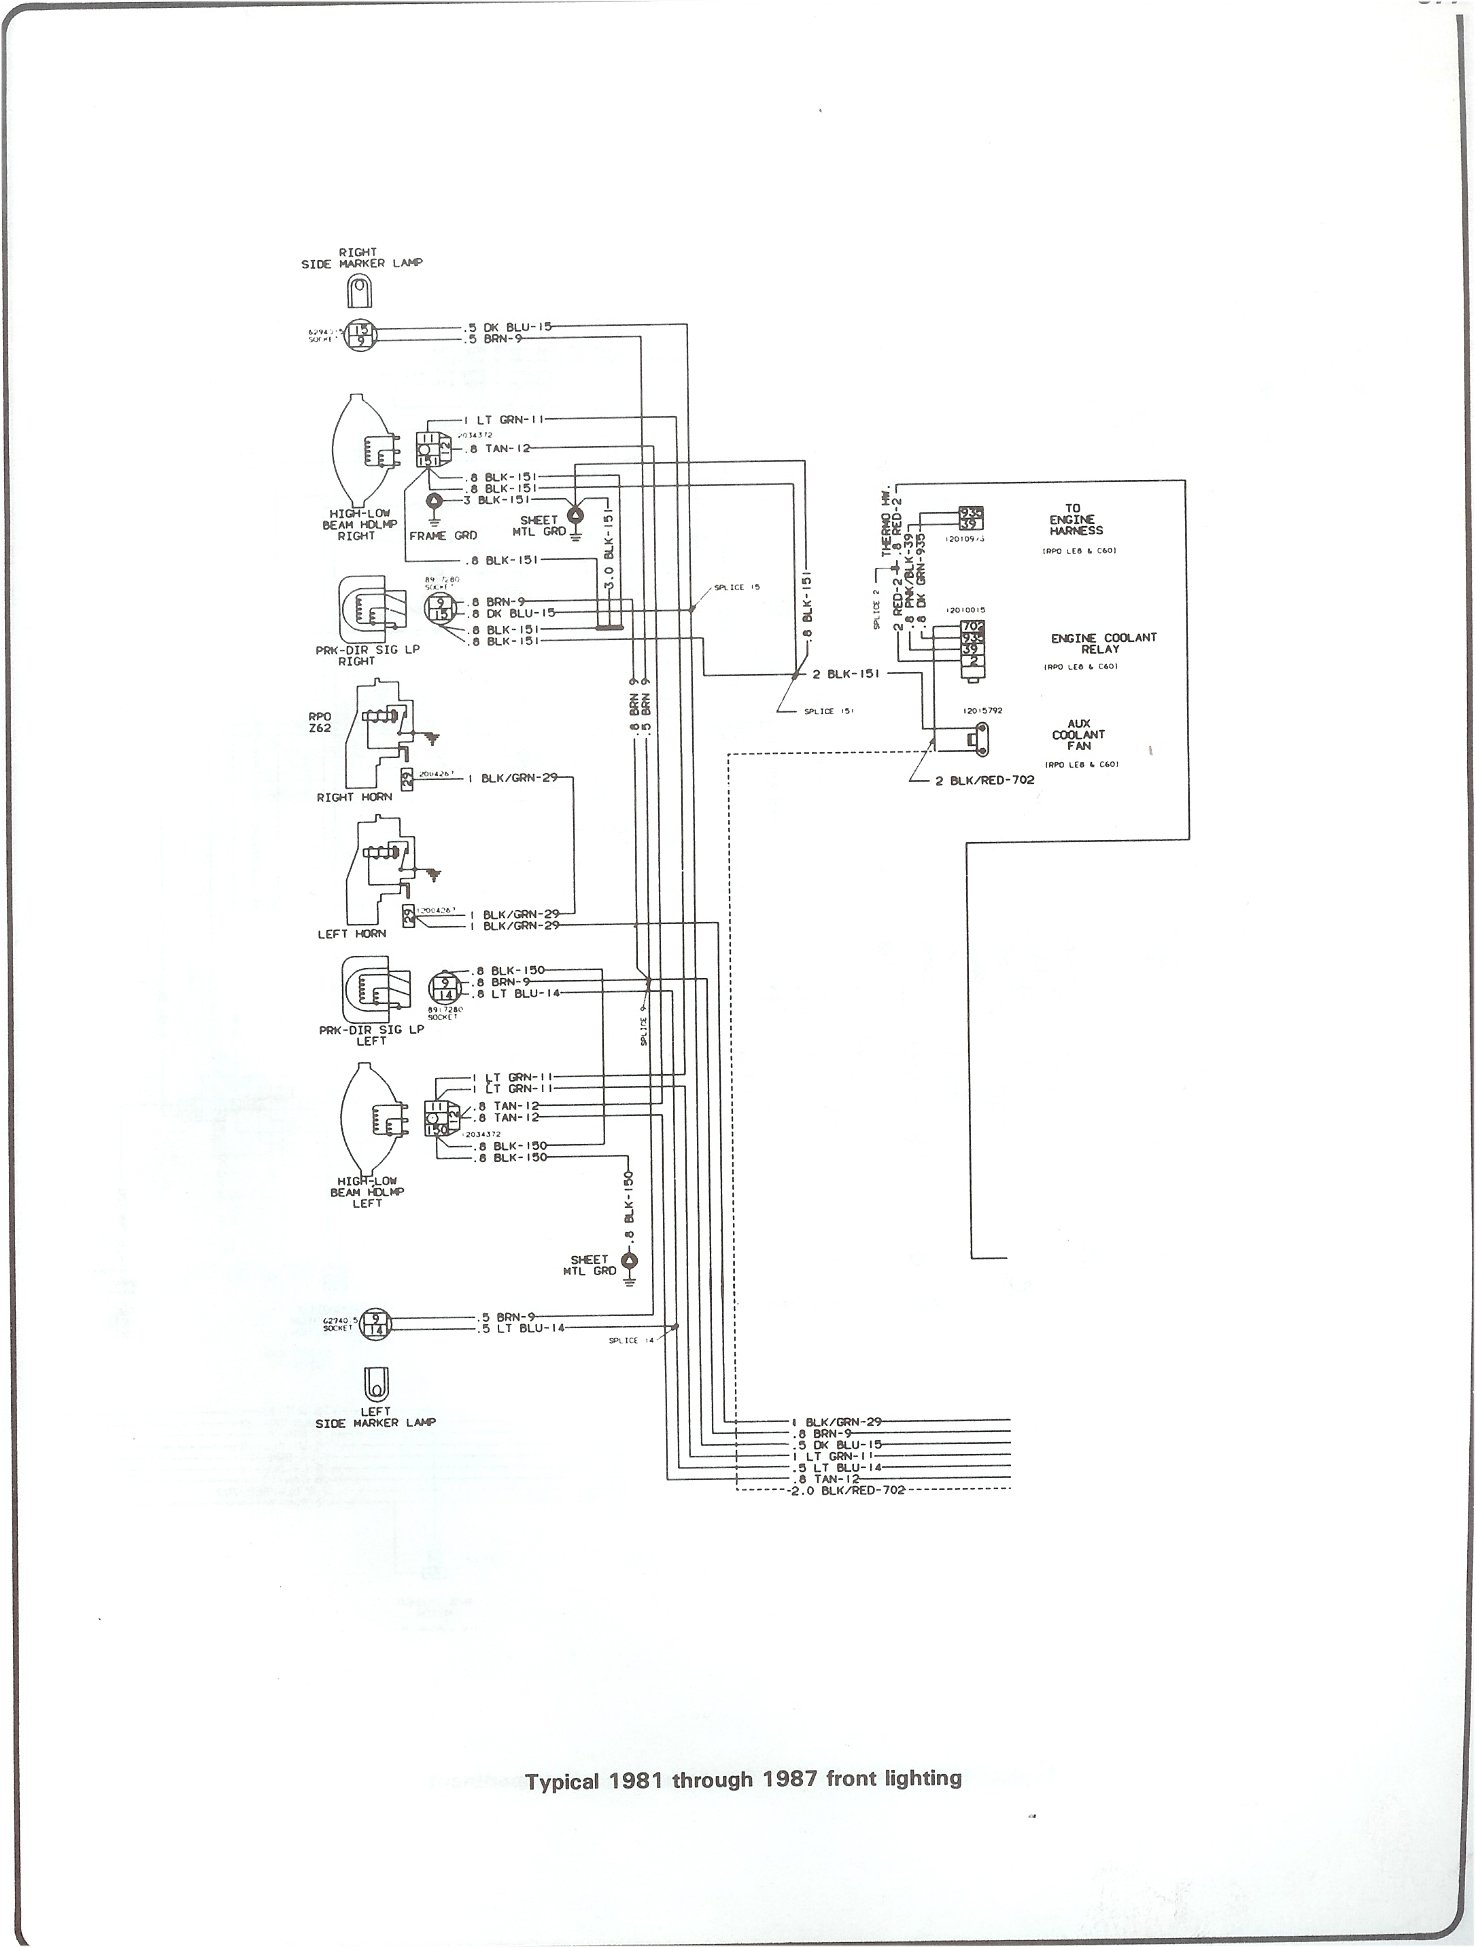 [DIAGRAM] 1999 Chevy Lumina Brake Light Wiring Diagram